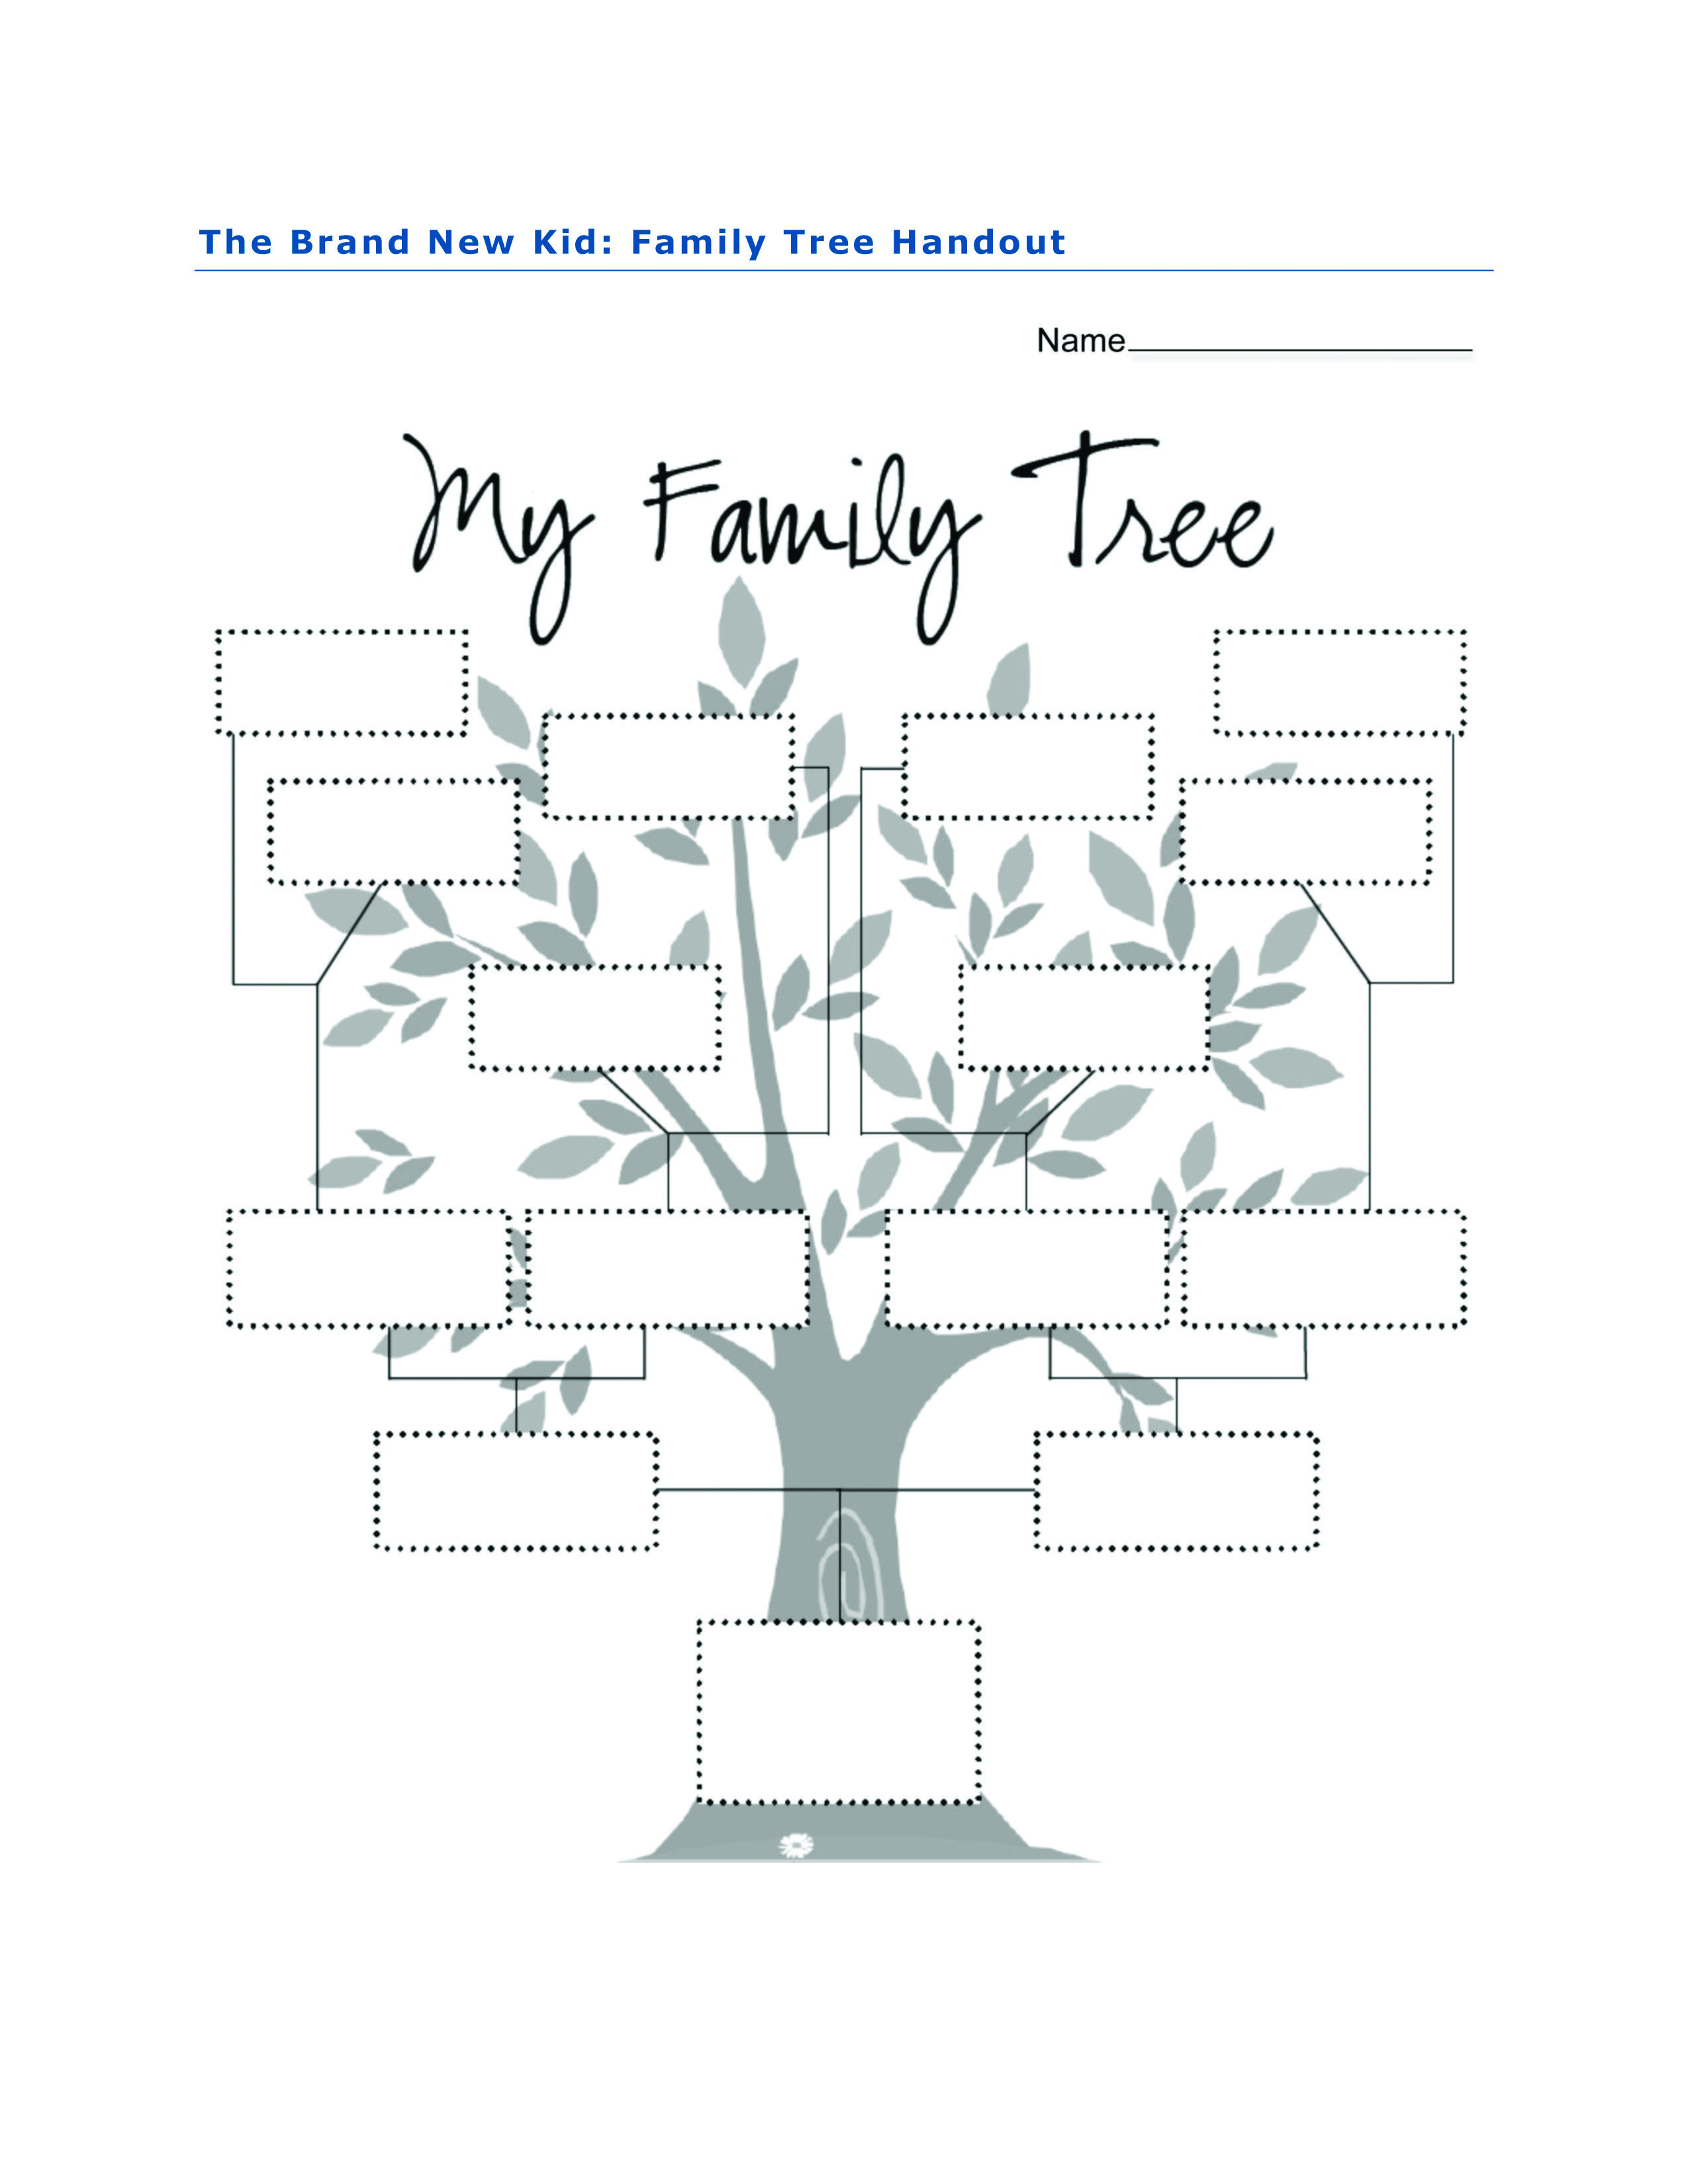 Family Tree Activity For The Brand New Kid By Katie Couric